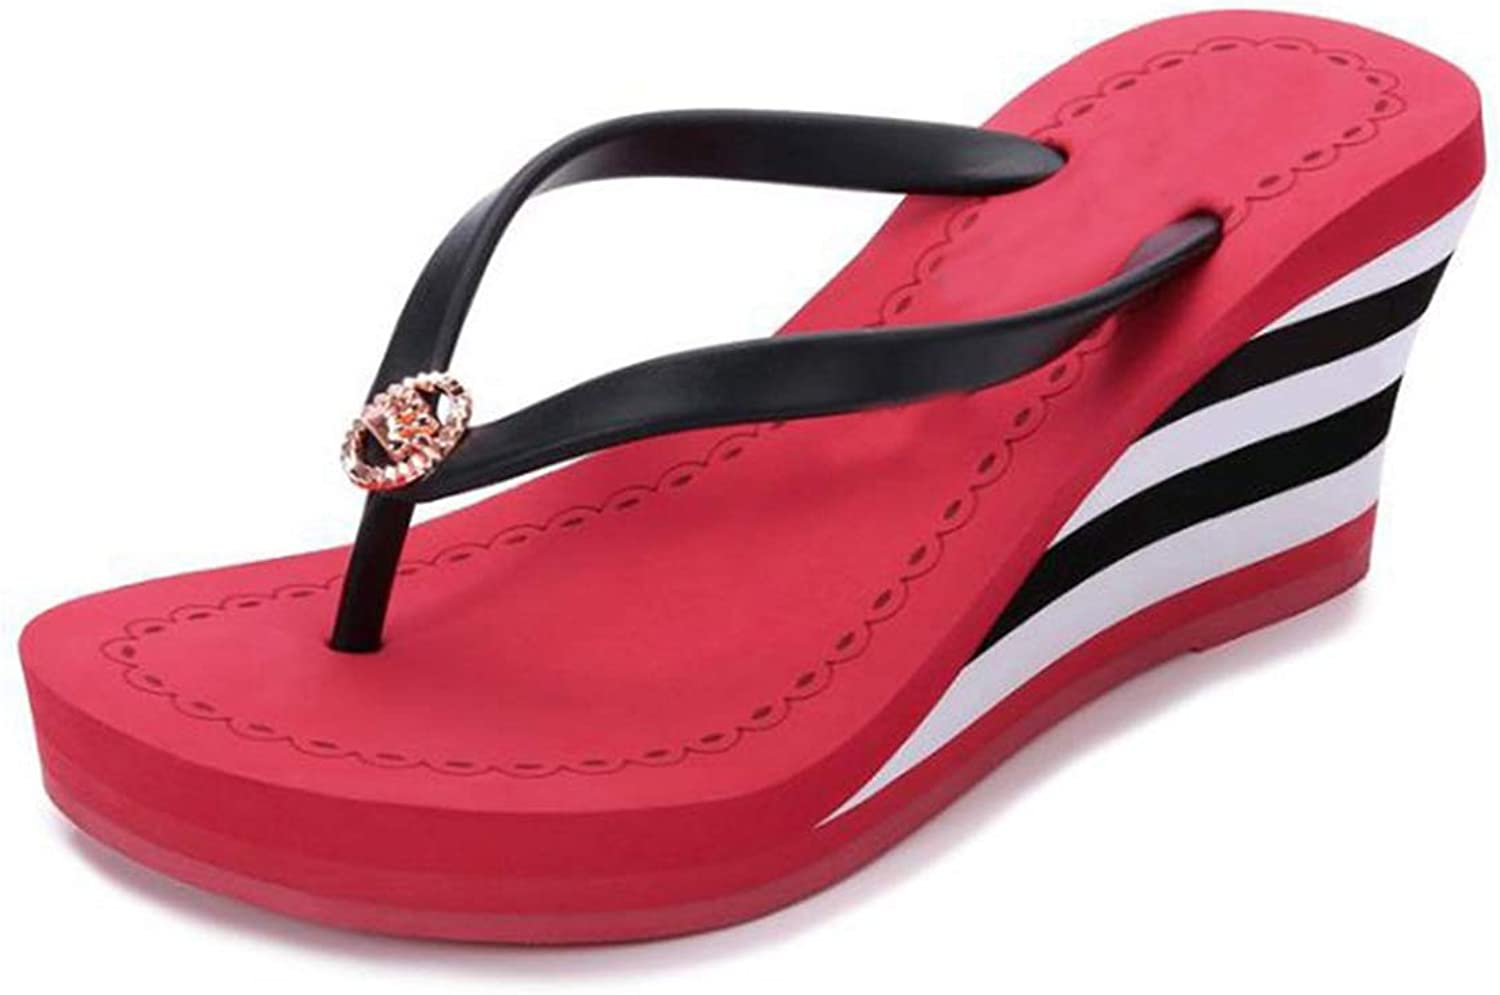 T-JULY Summer Women Sandals for Beach Heels Wedges Platform Slippers Elegant Ladies Flip Flops